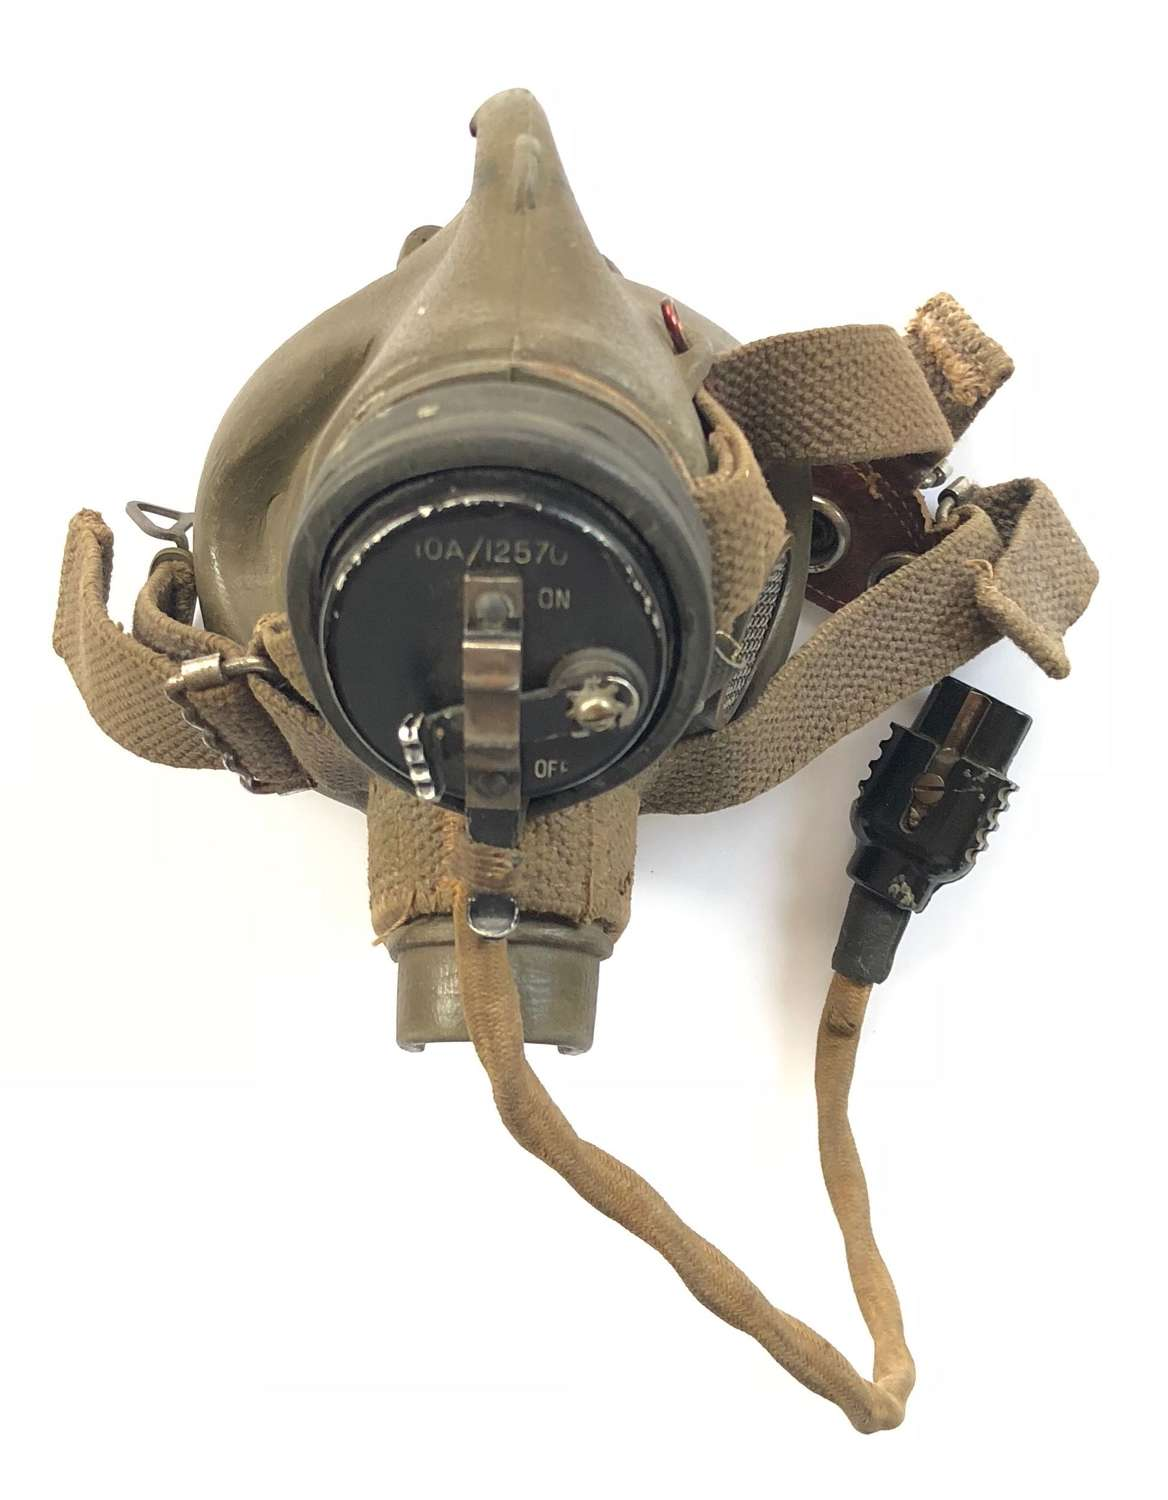 WW2 Period RAF G Type Oxygen Mask.